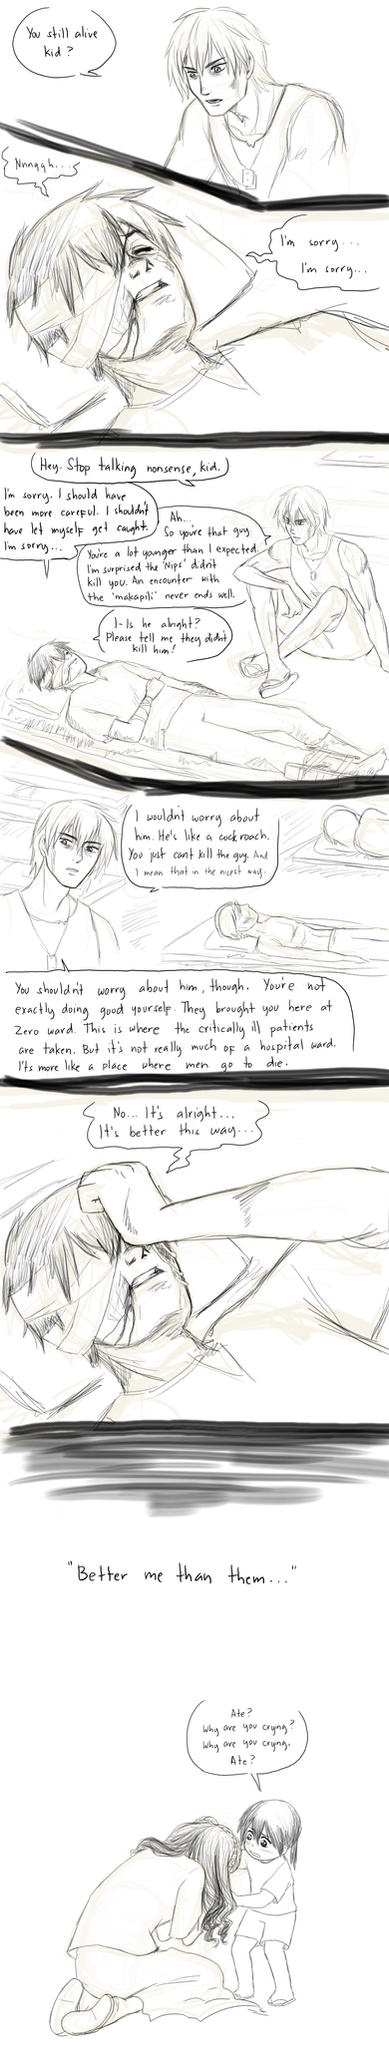 APH line up Random Comics - Betrayal by randomsketchez